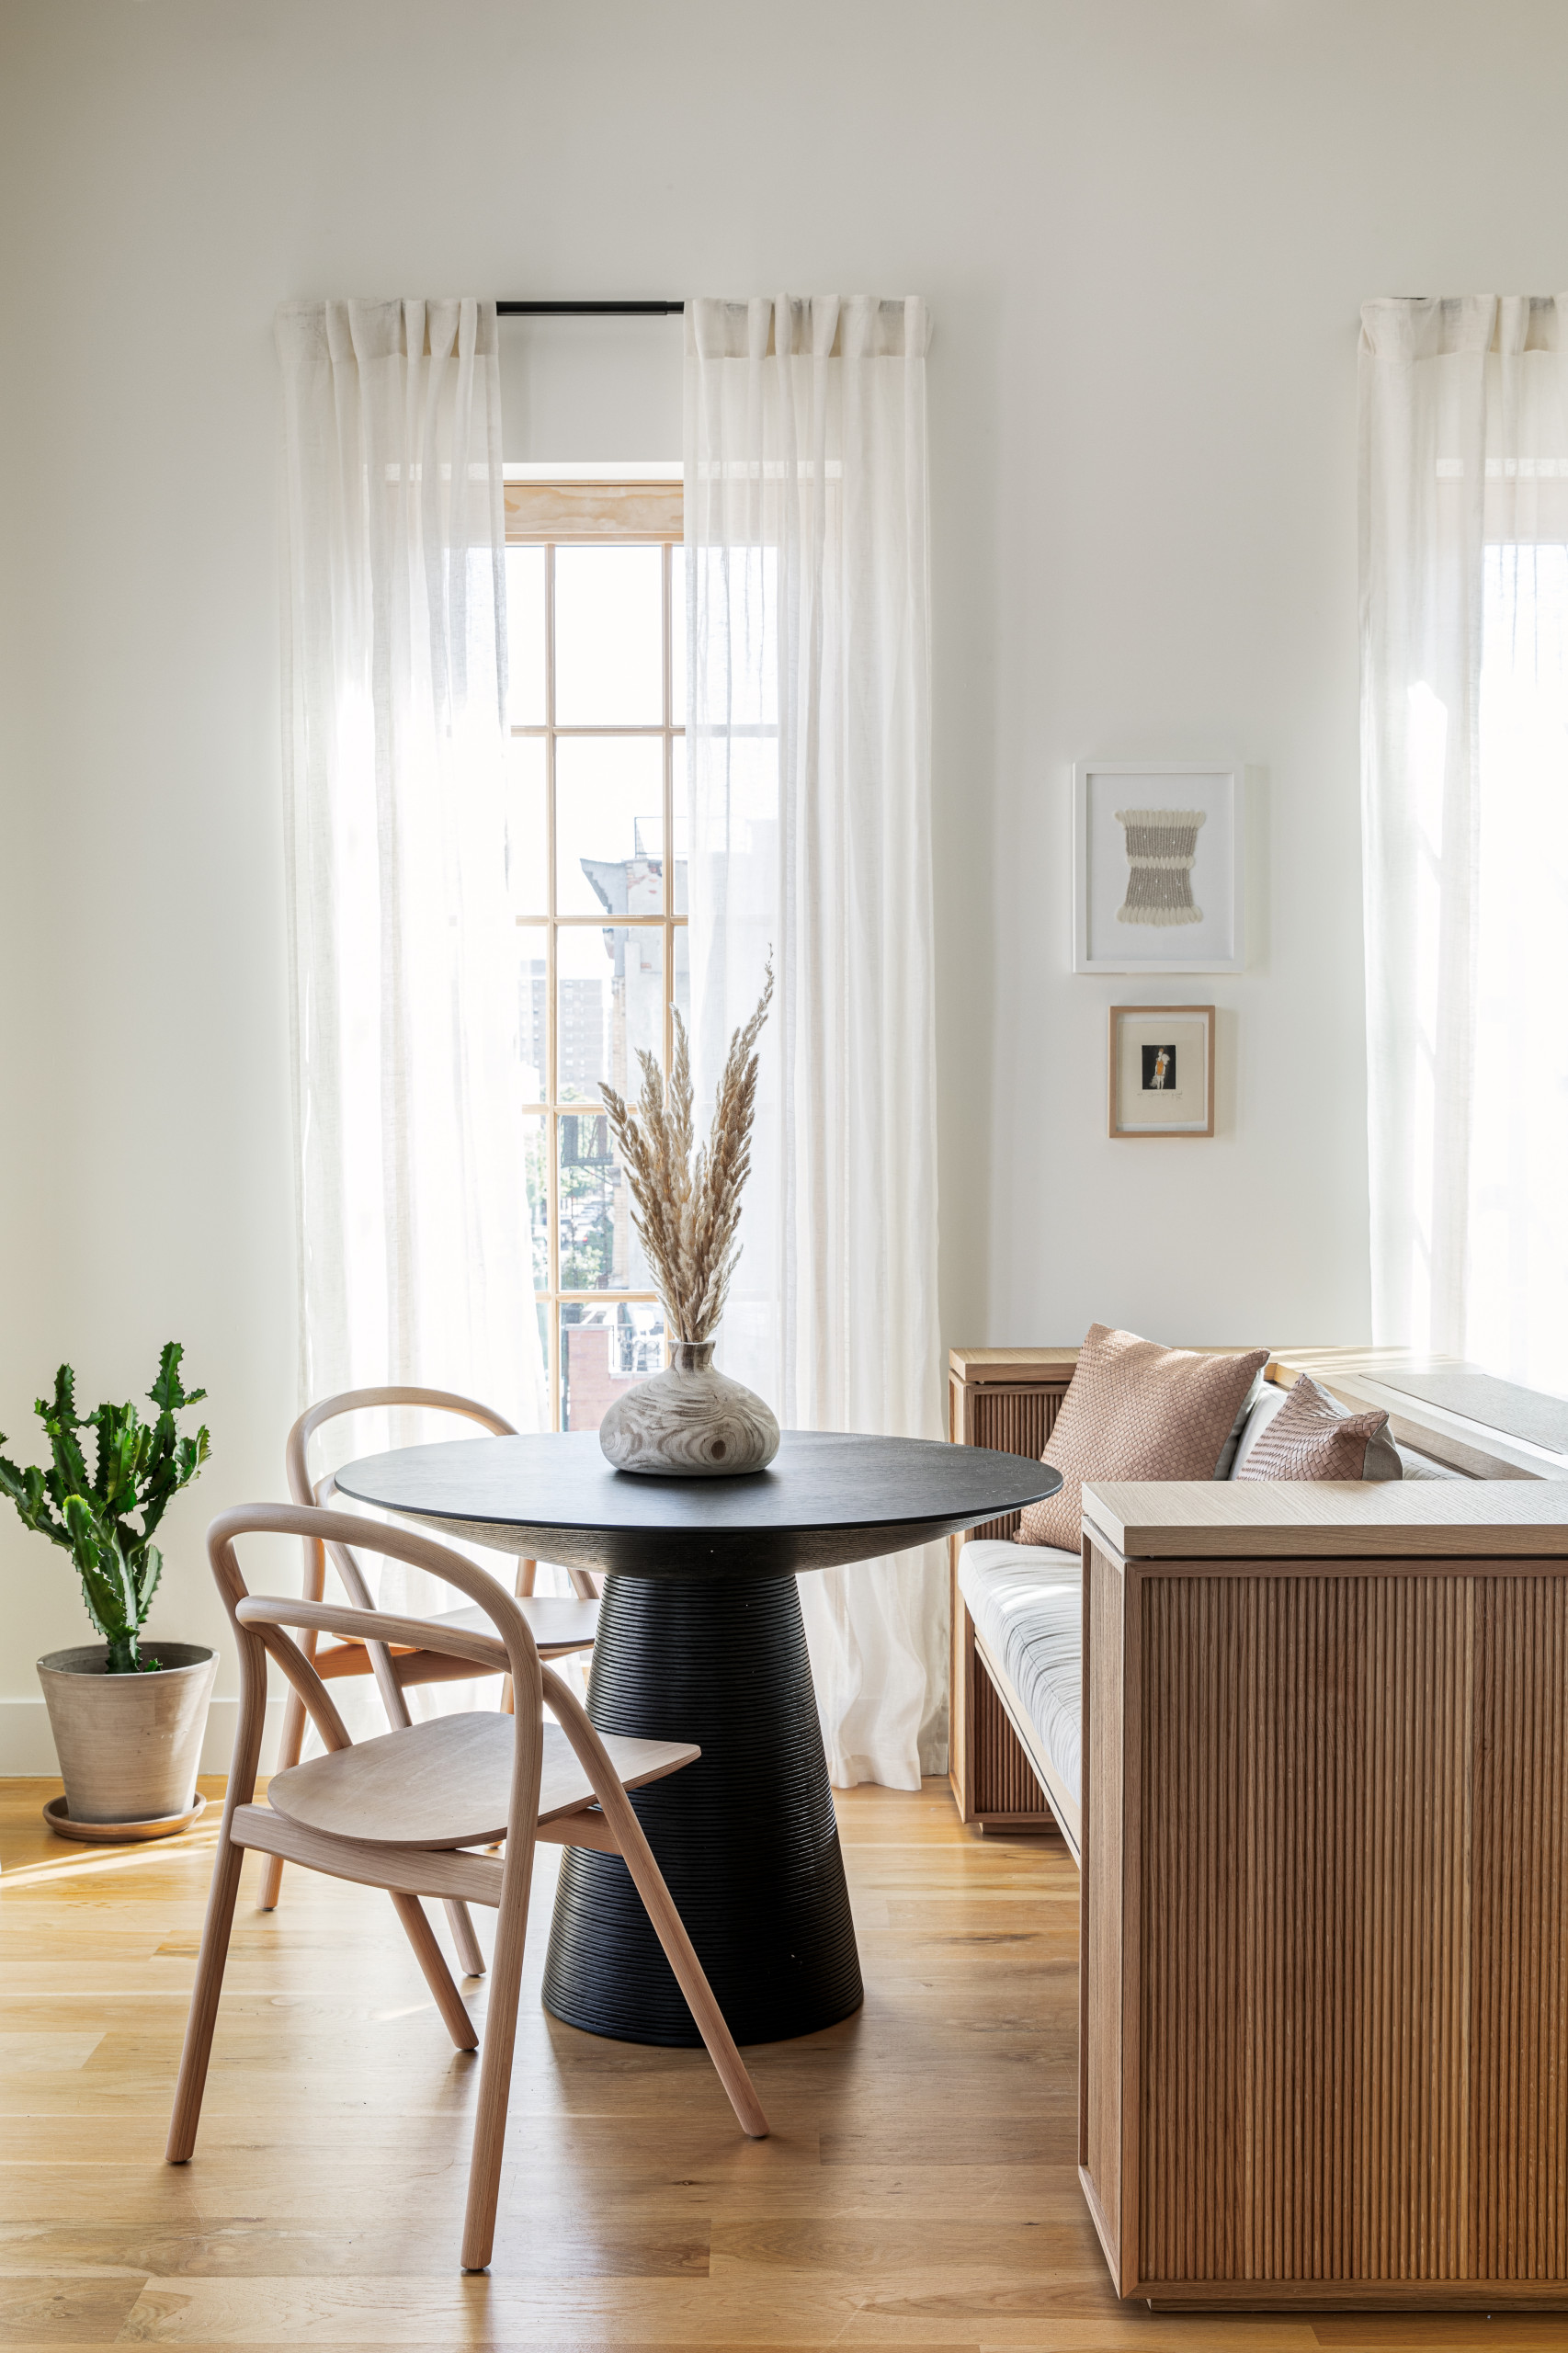 Banquette-style-seating-coupled-with-a-couple-of-chairs-for-the-small-Scandinavian-style-dining-rooms-87724